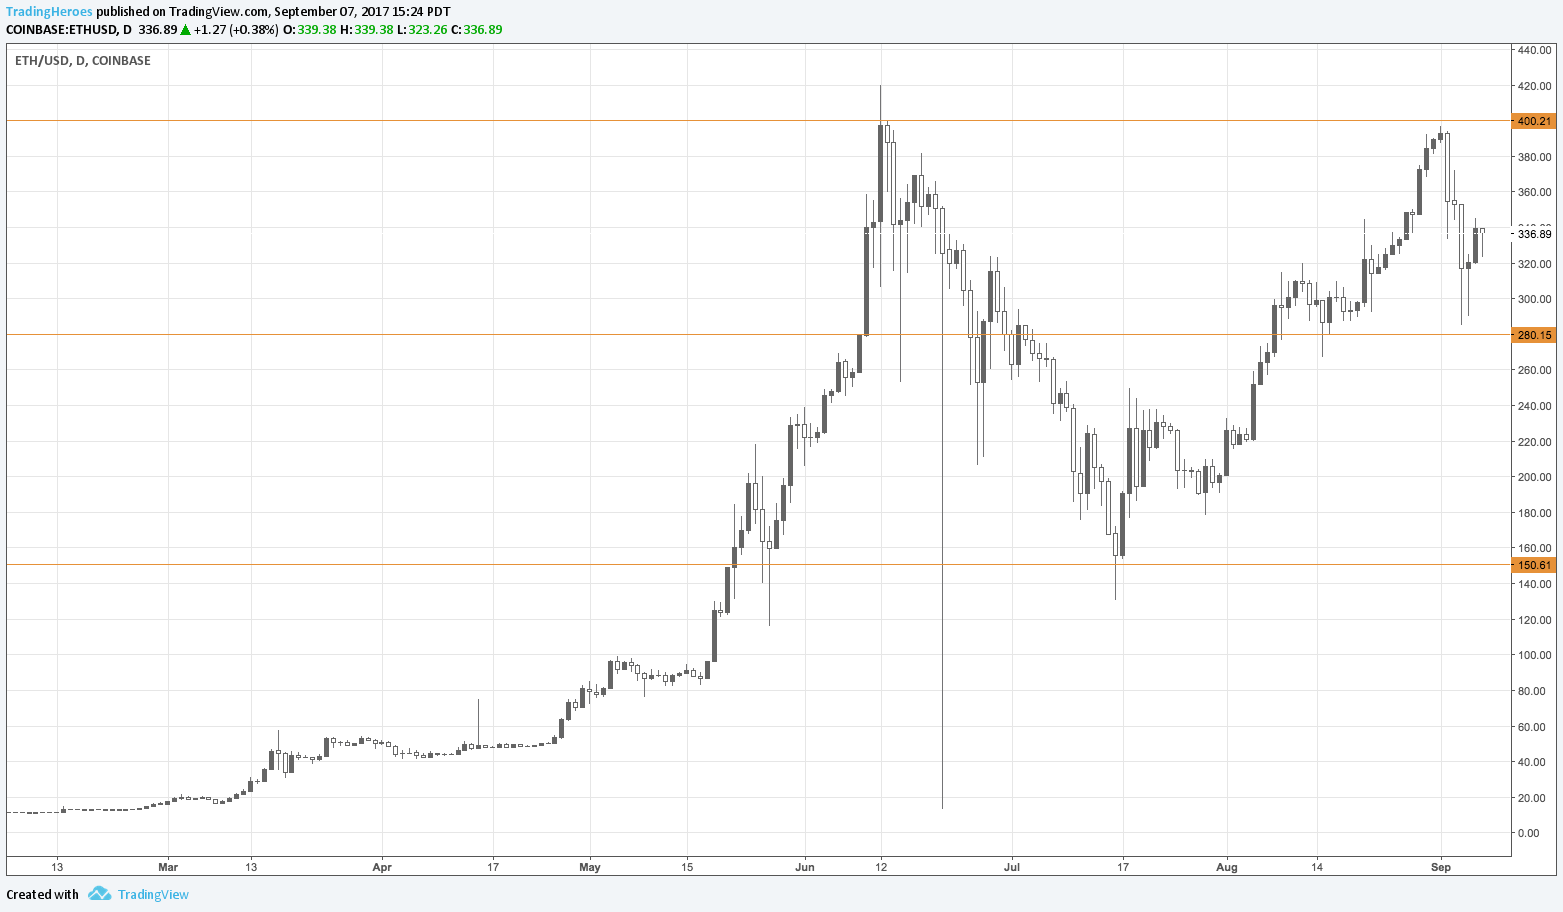 Ether/USD